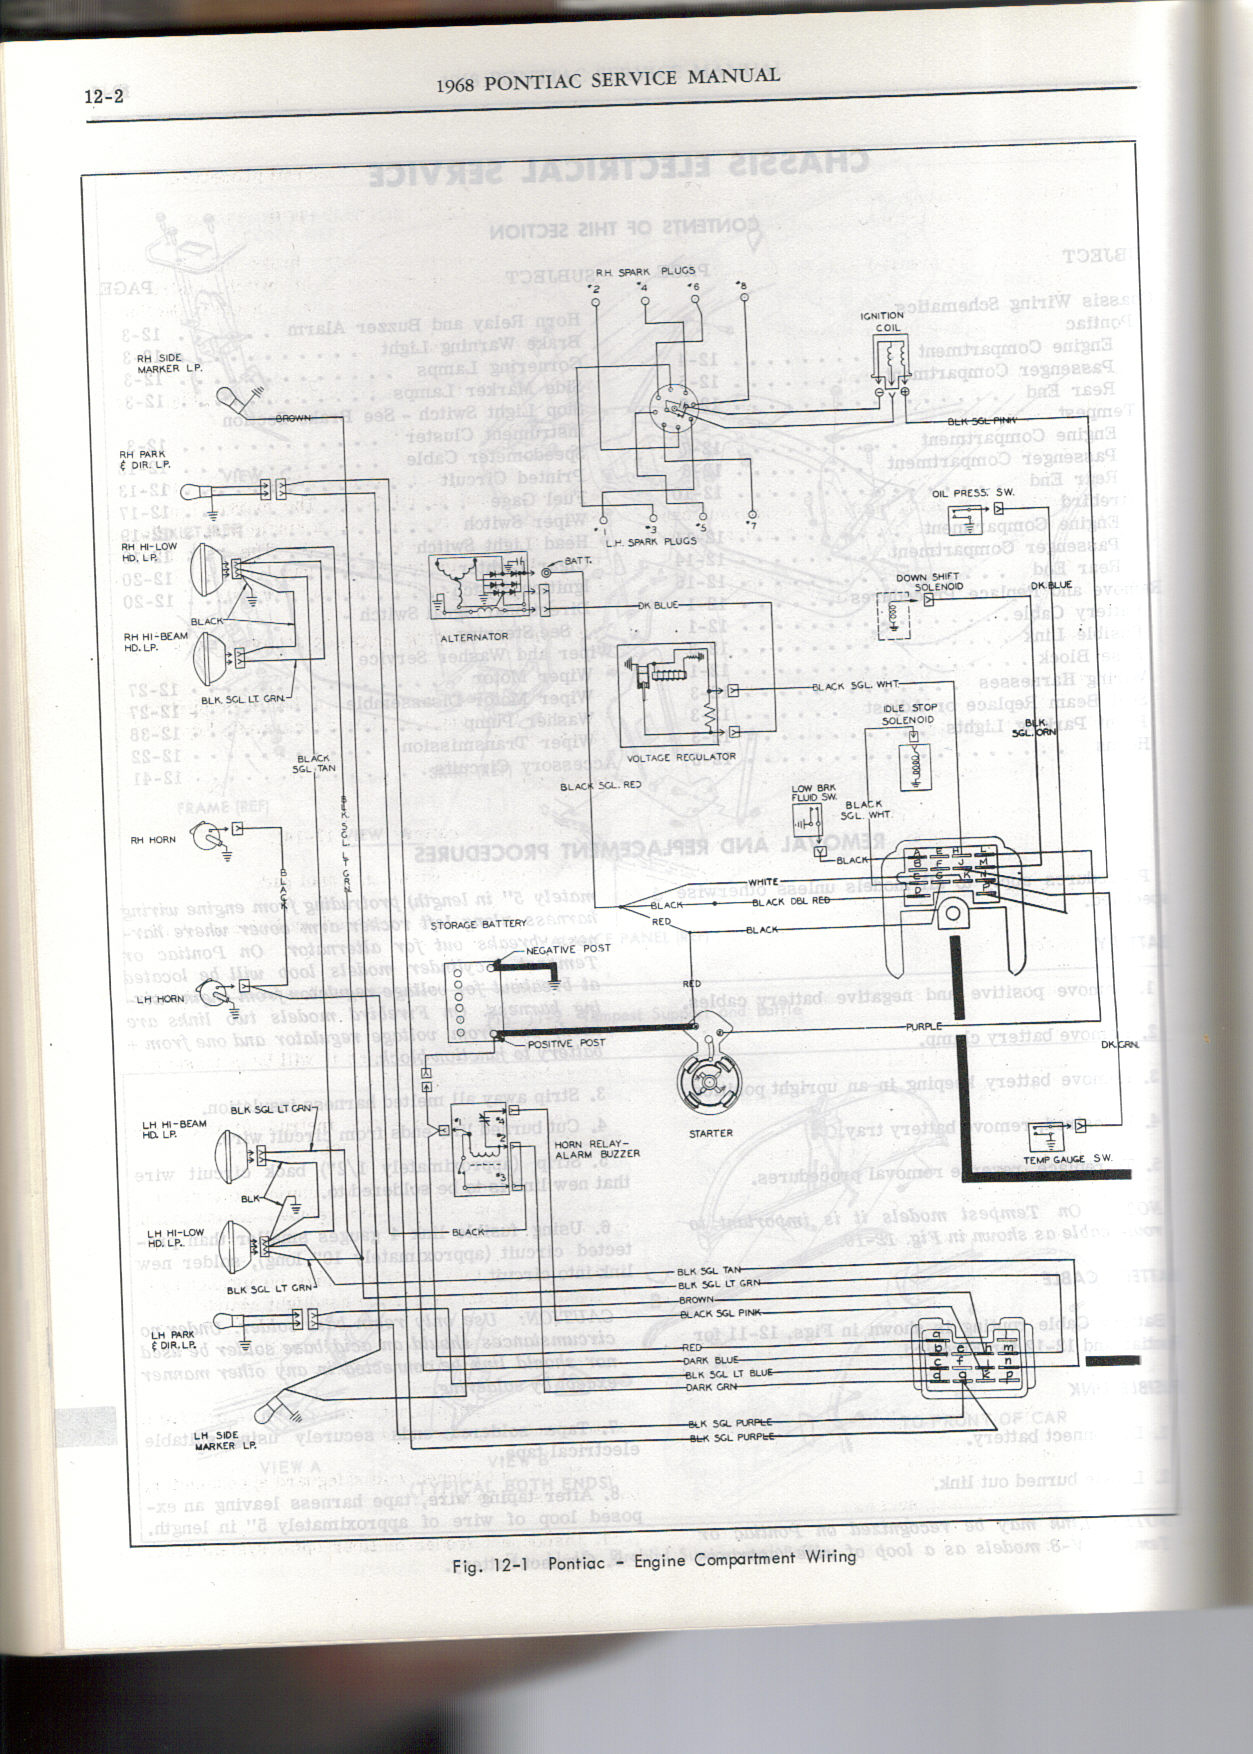 wiring diagram for 1968 pontiac